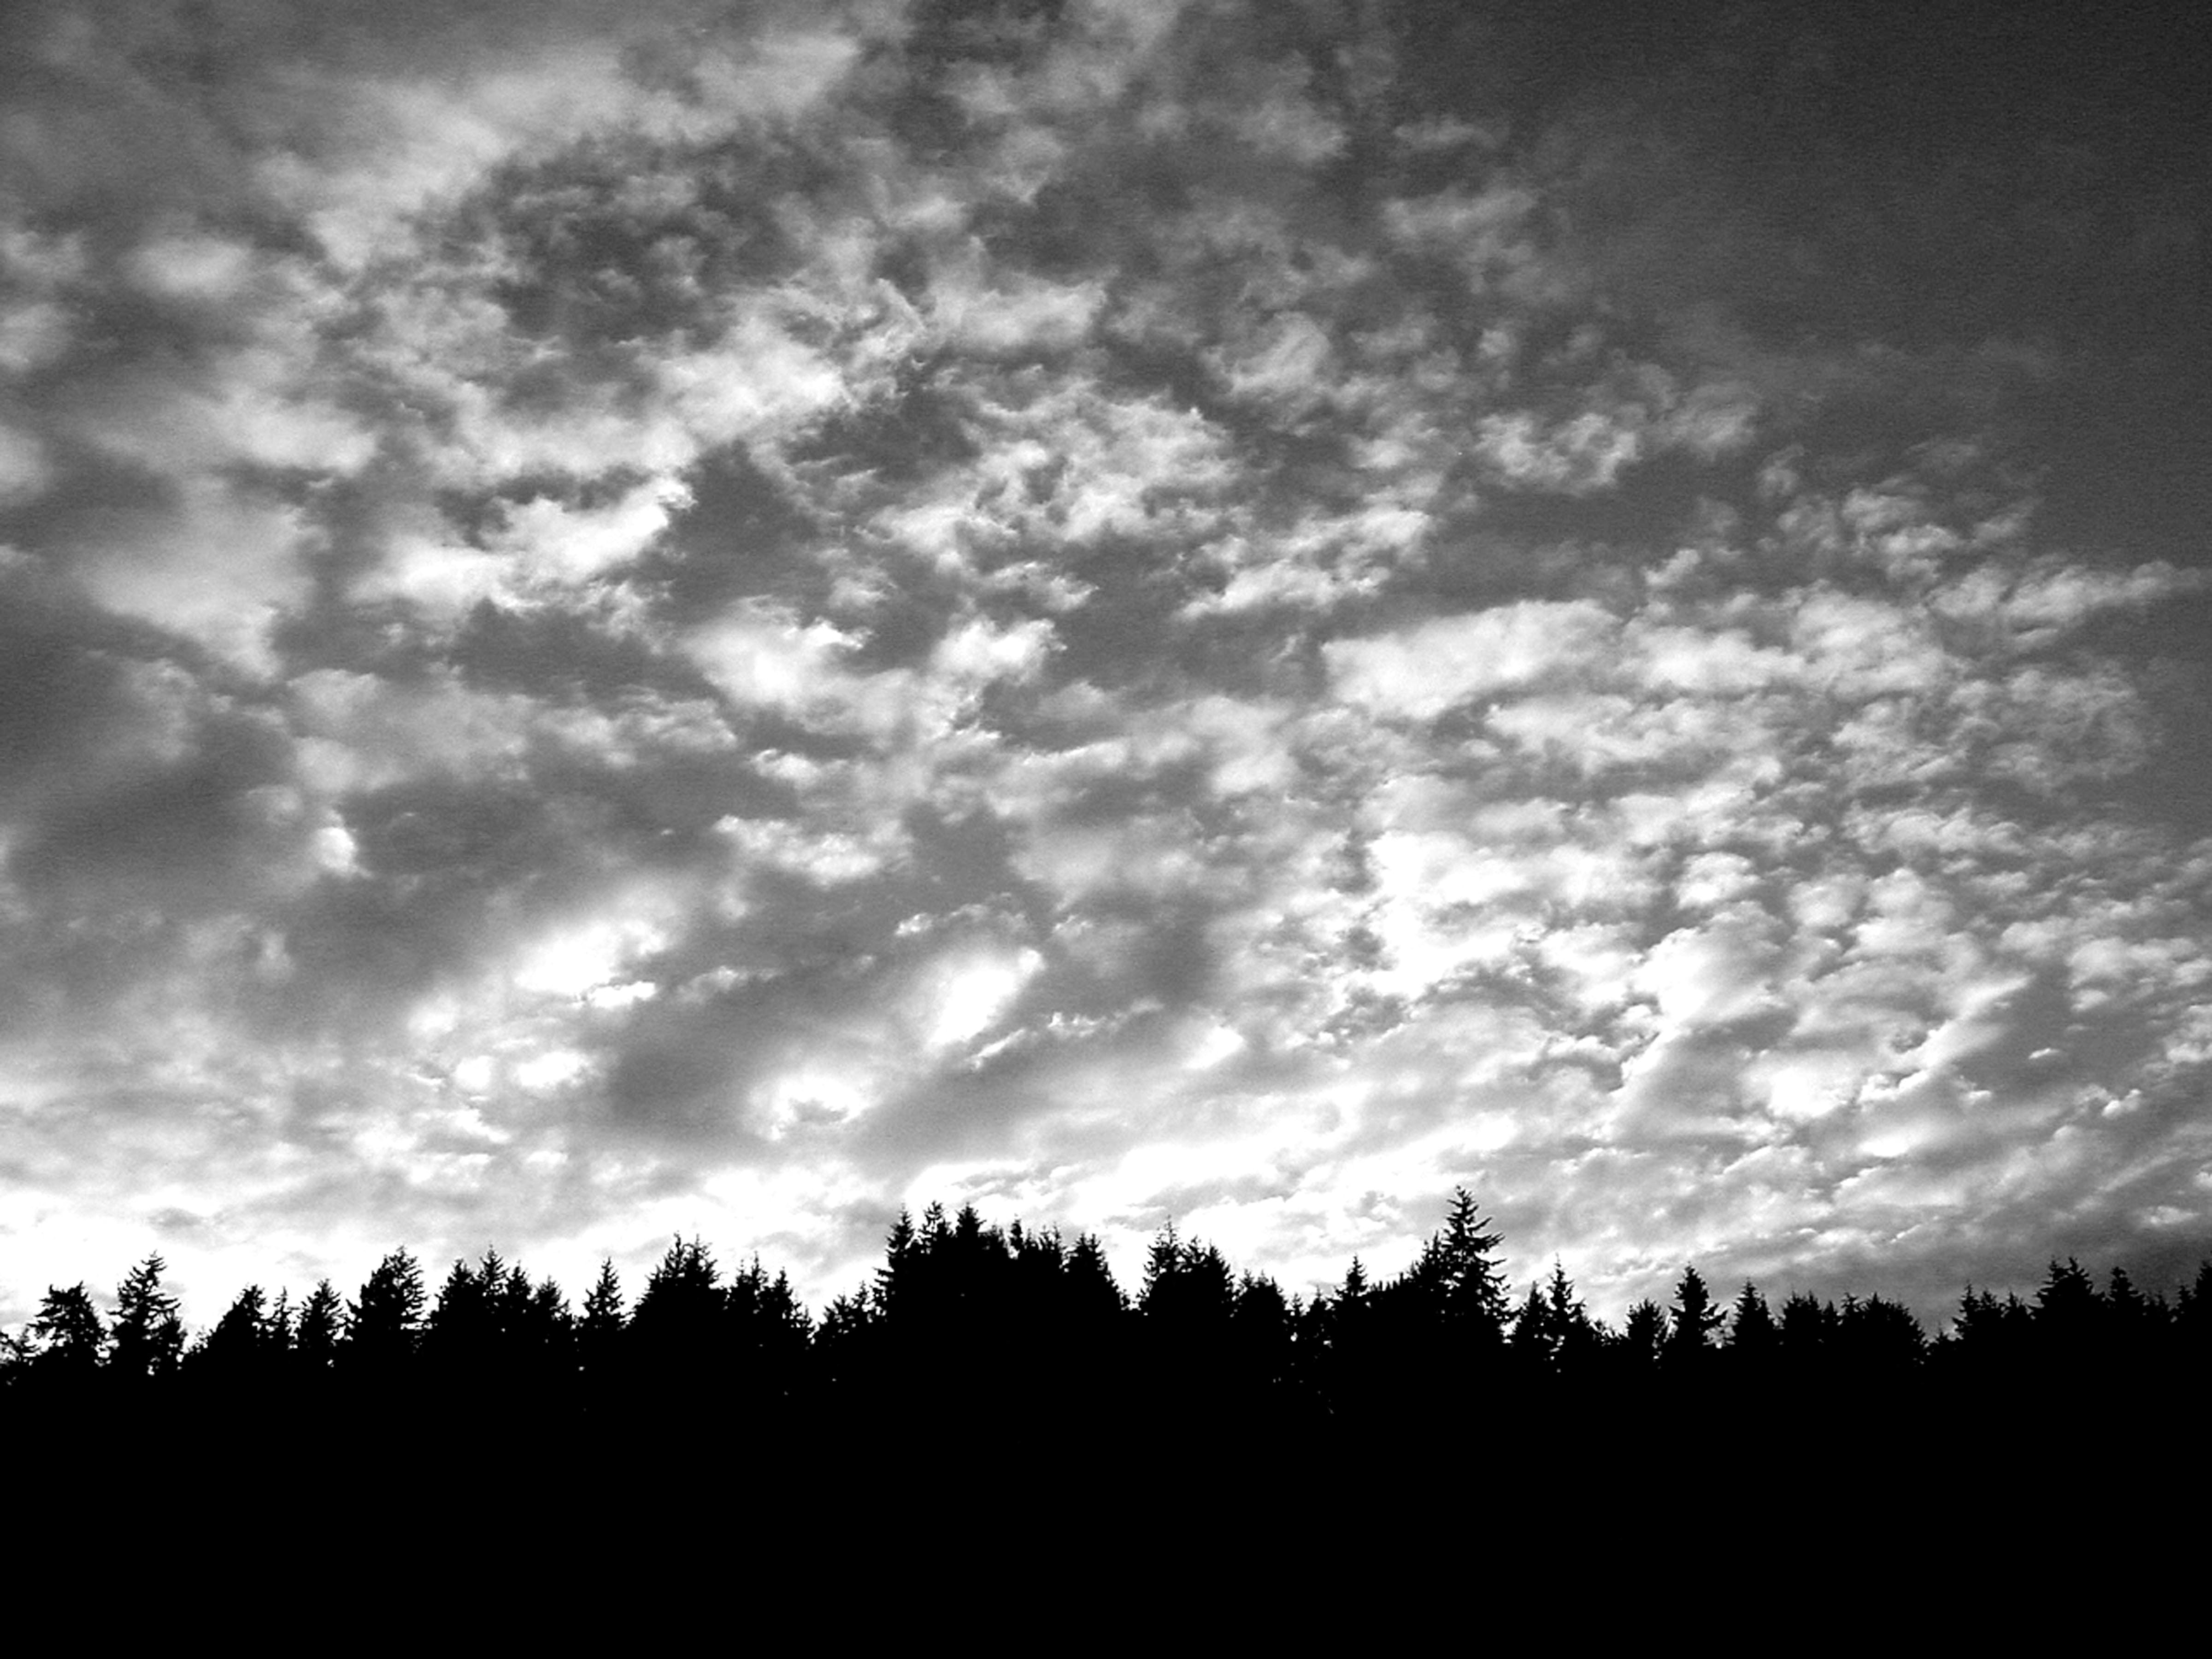 Free stock photo of grayscale clouds